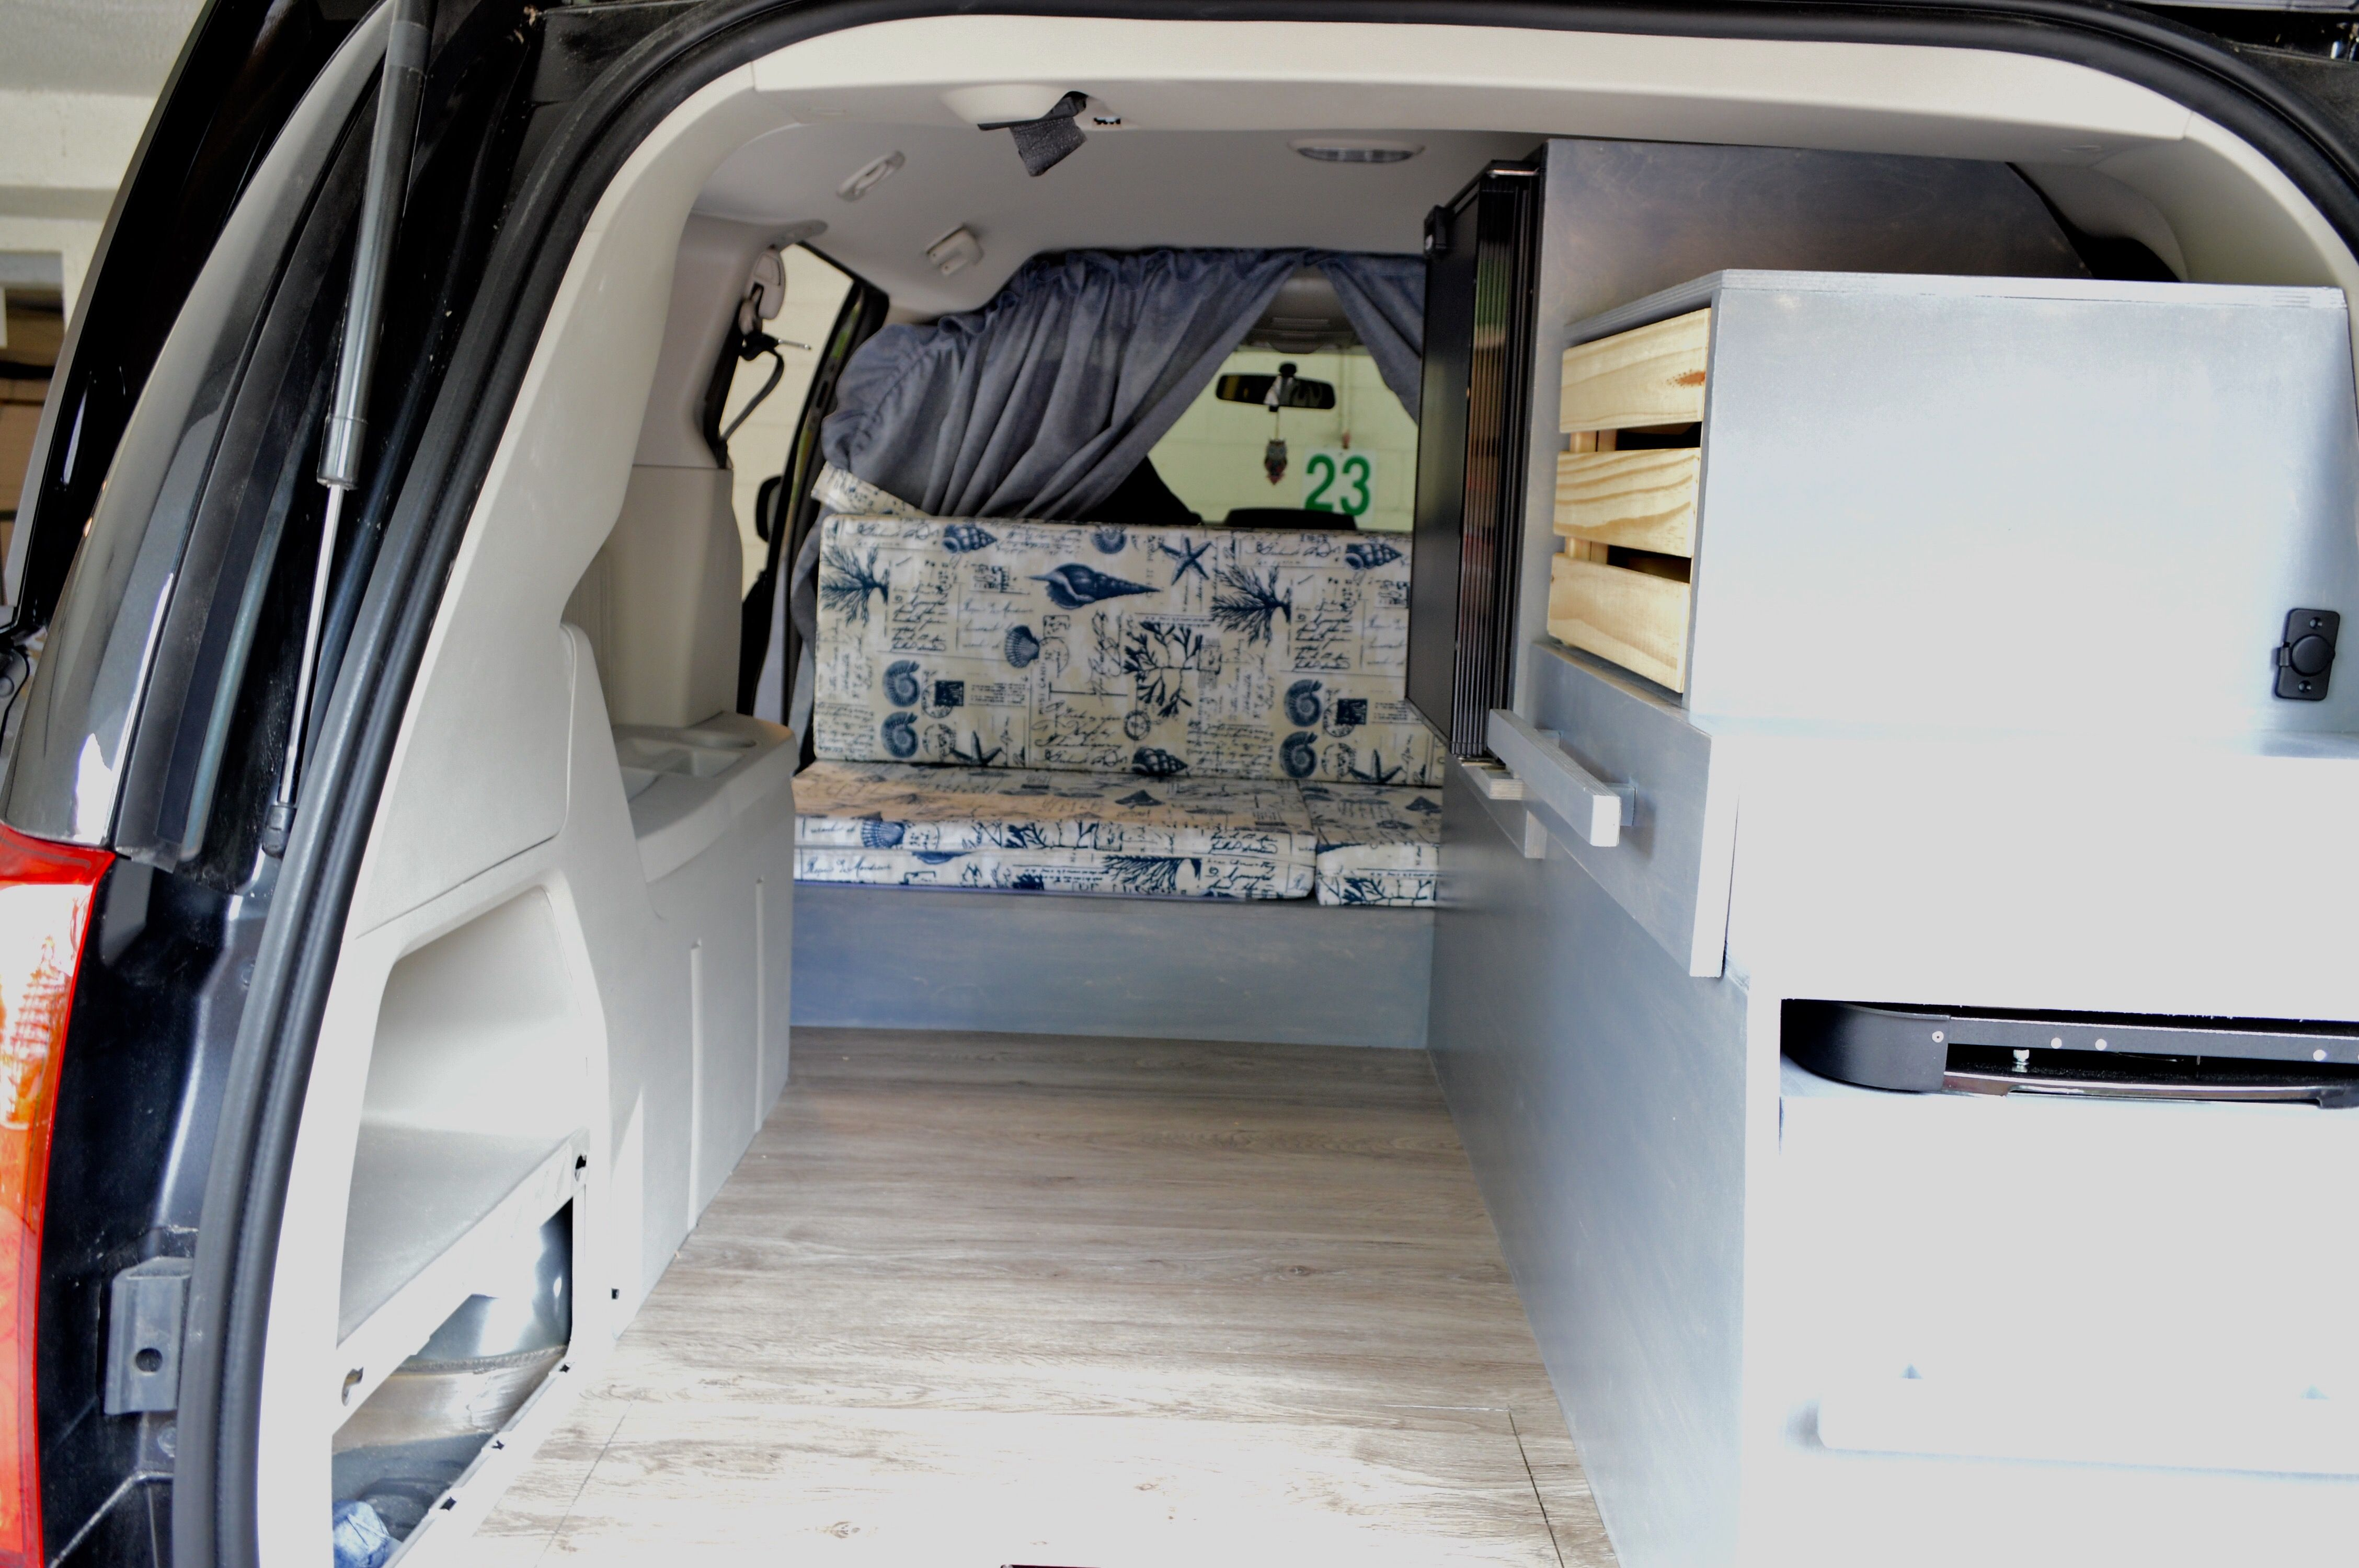 Couch Bed Cushions Are In Camper Campervan Minivancamper